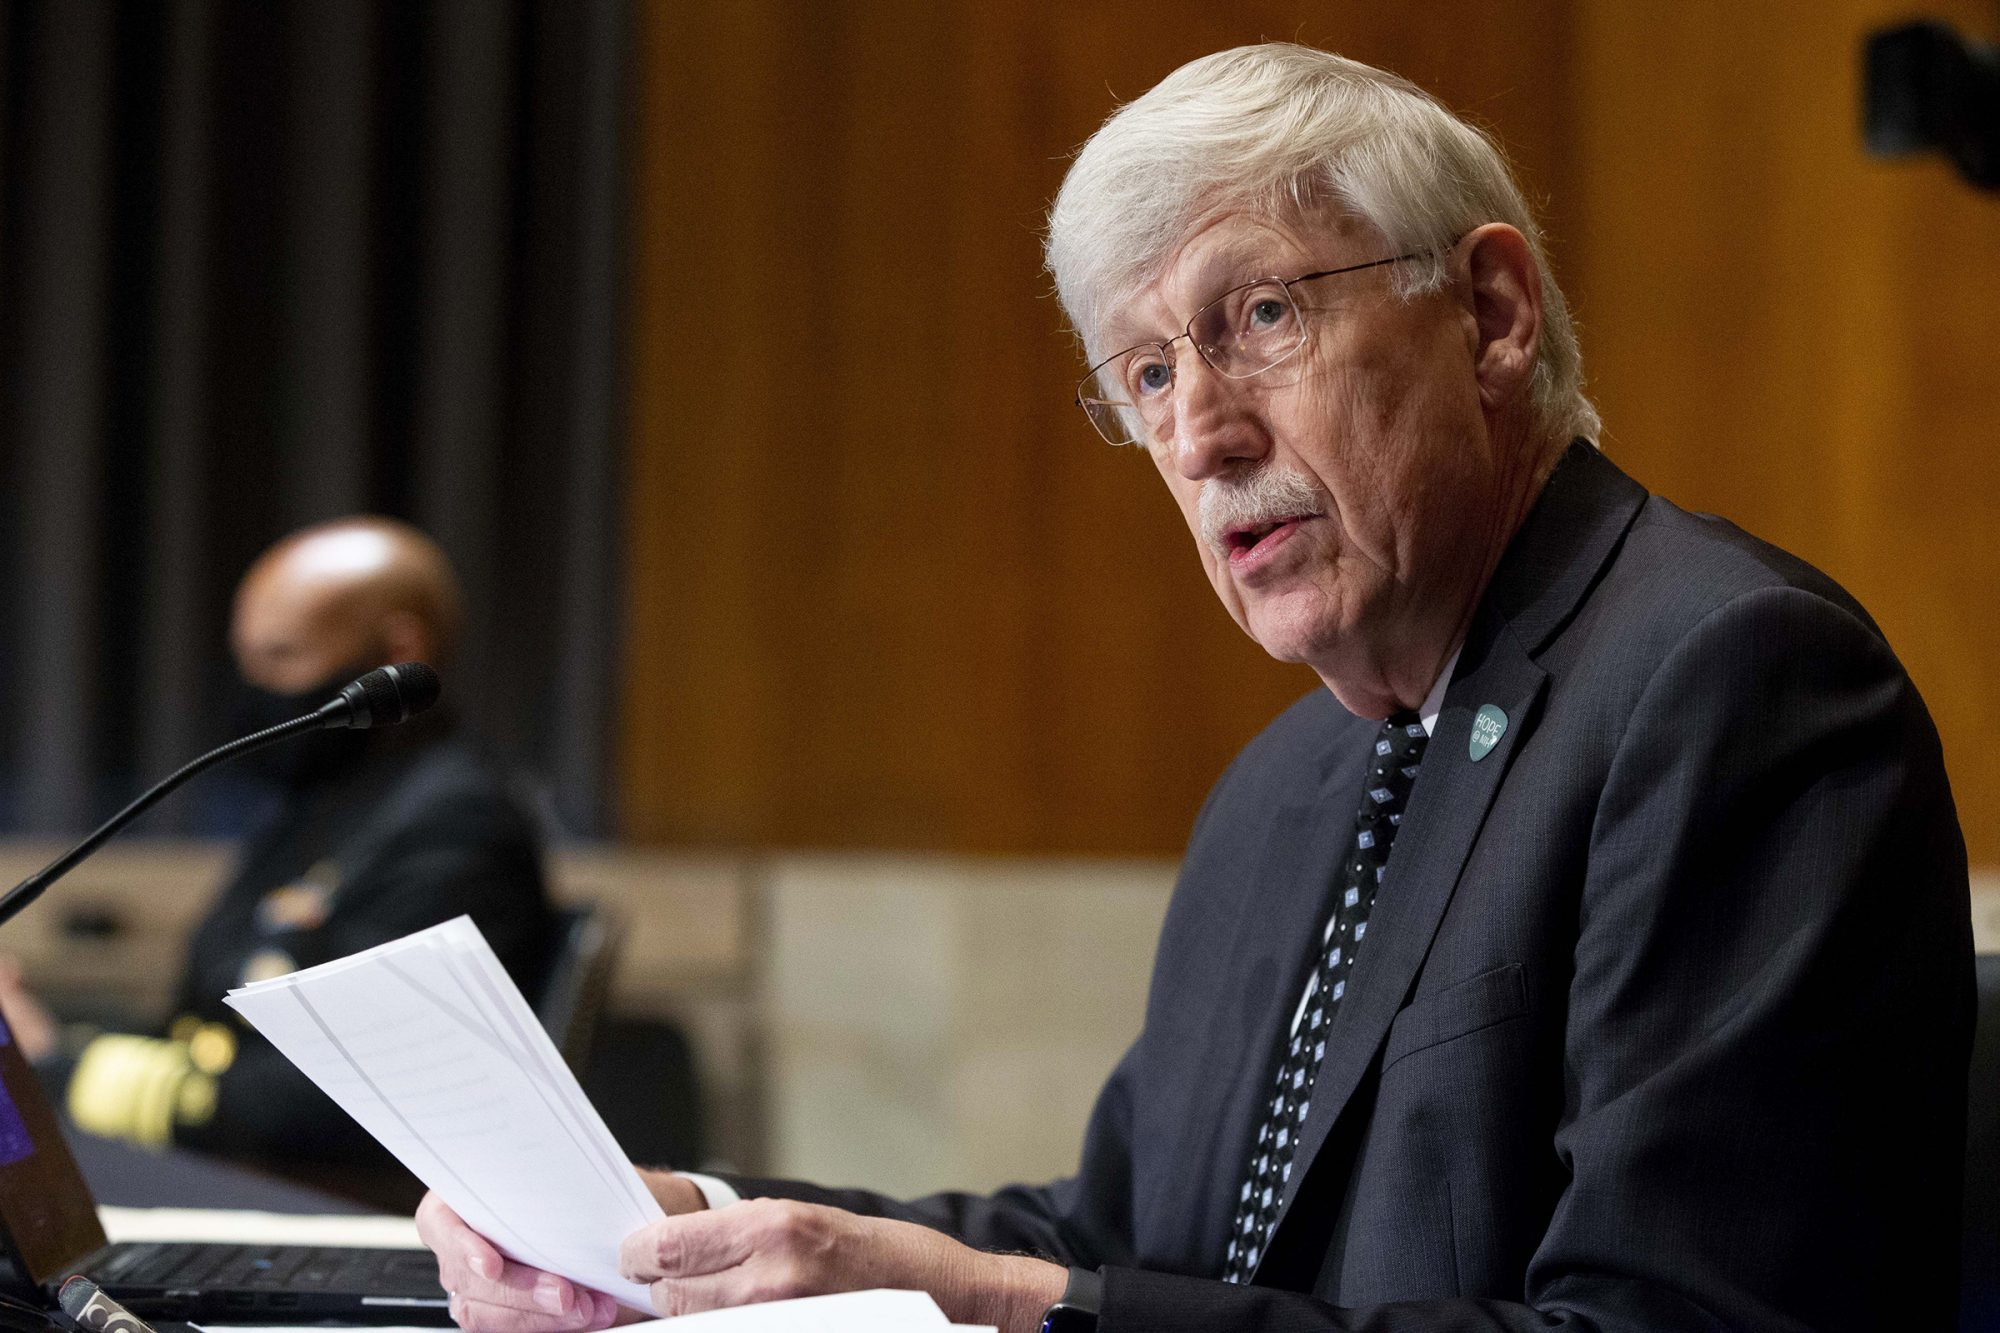 U.S. National Institutes of Health (NIH) Director Francis Collins